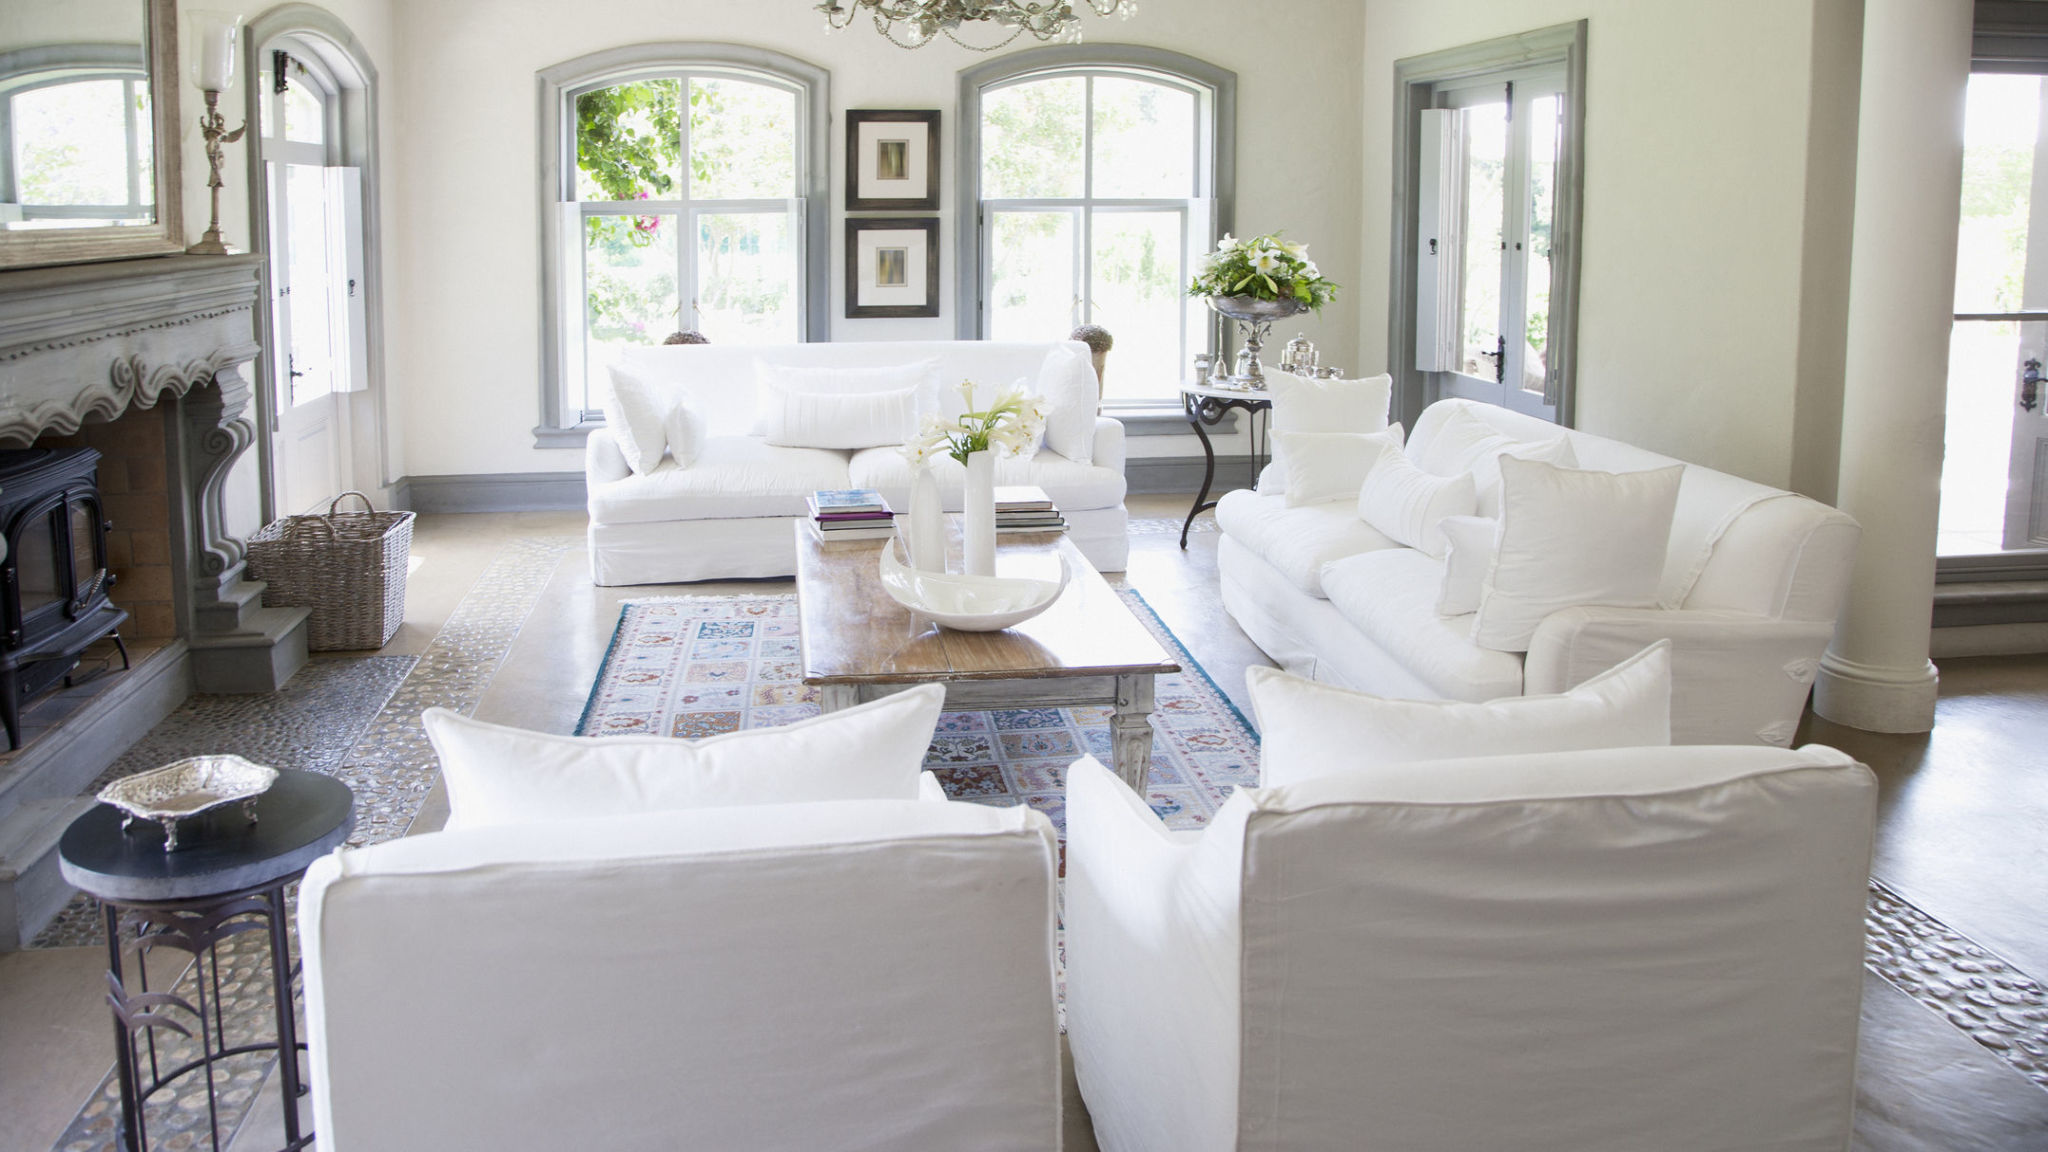 What No e Tells You About Owning a White Couch The Truth About